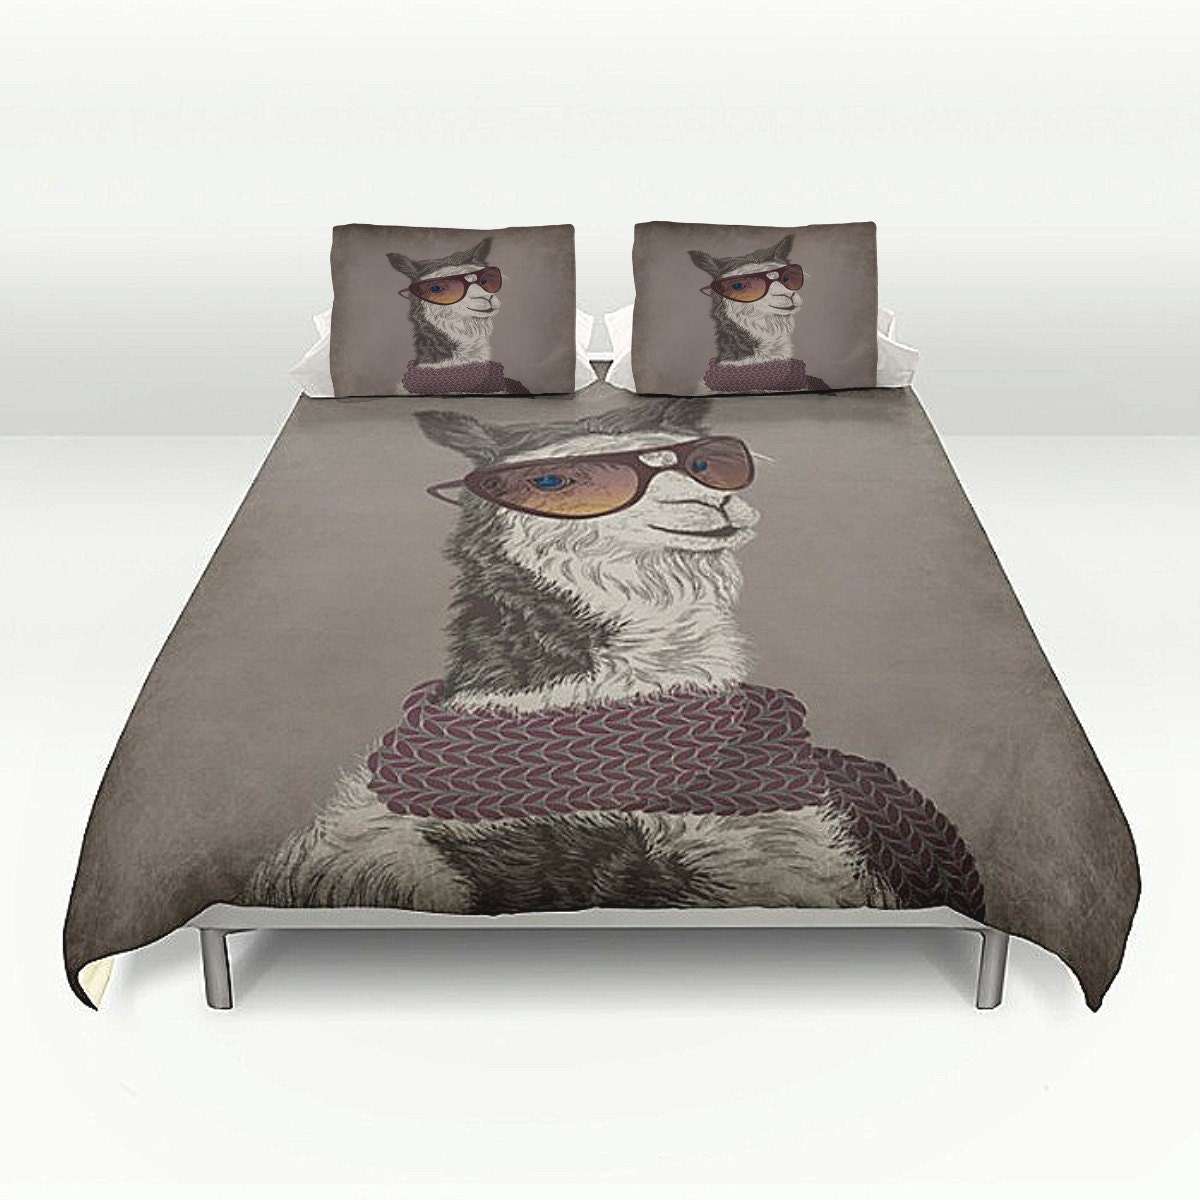 Grunge Bedding Sets